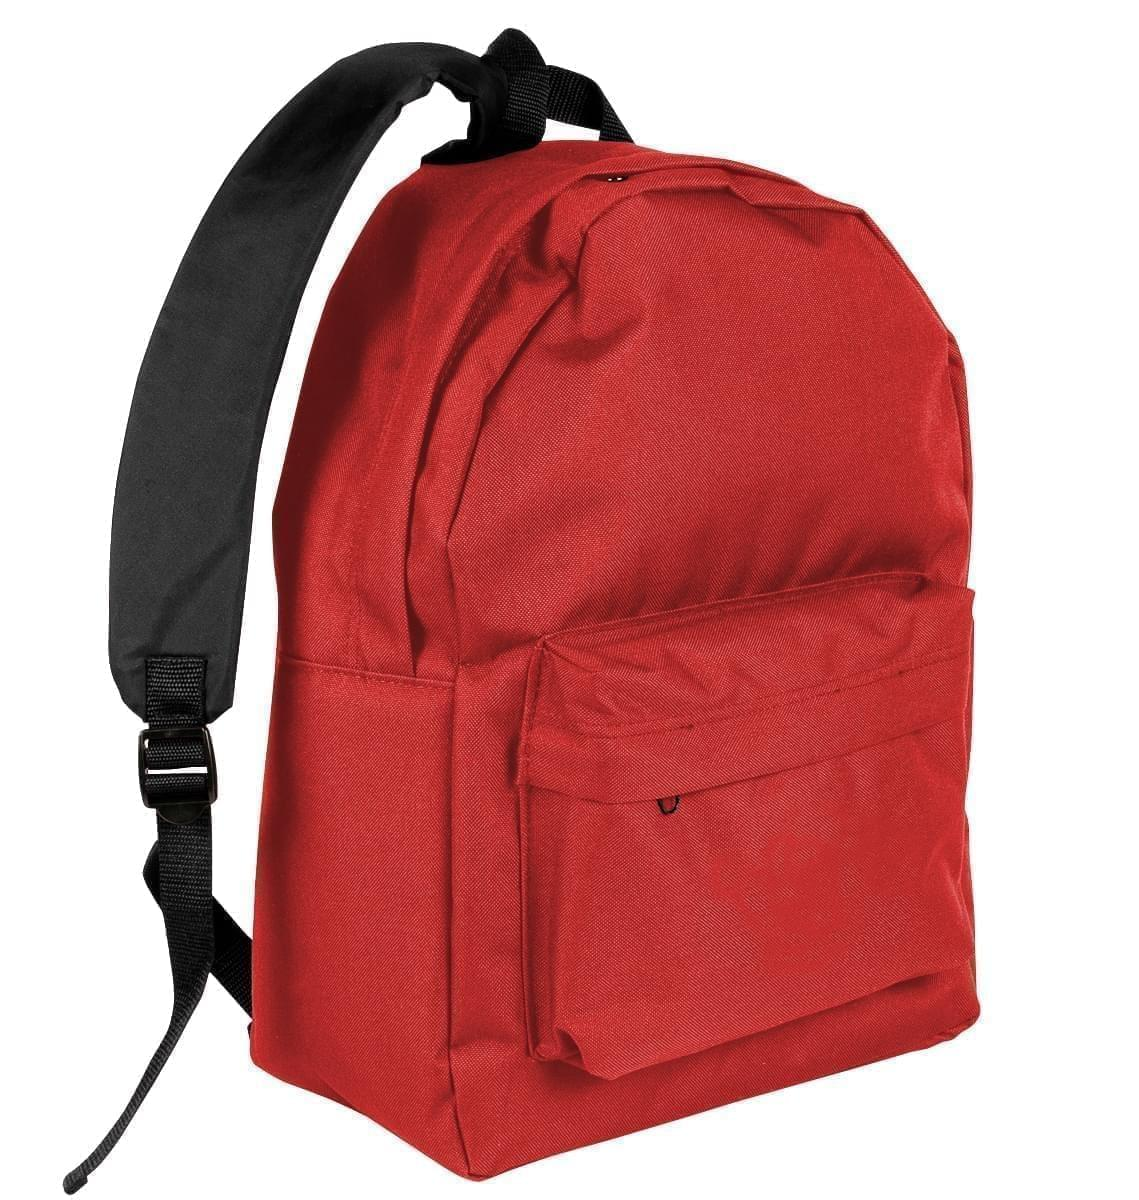 USA Made Nylon Poly Backpack Knapsacks, 8960-600